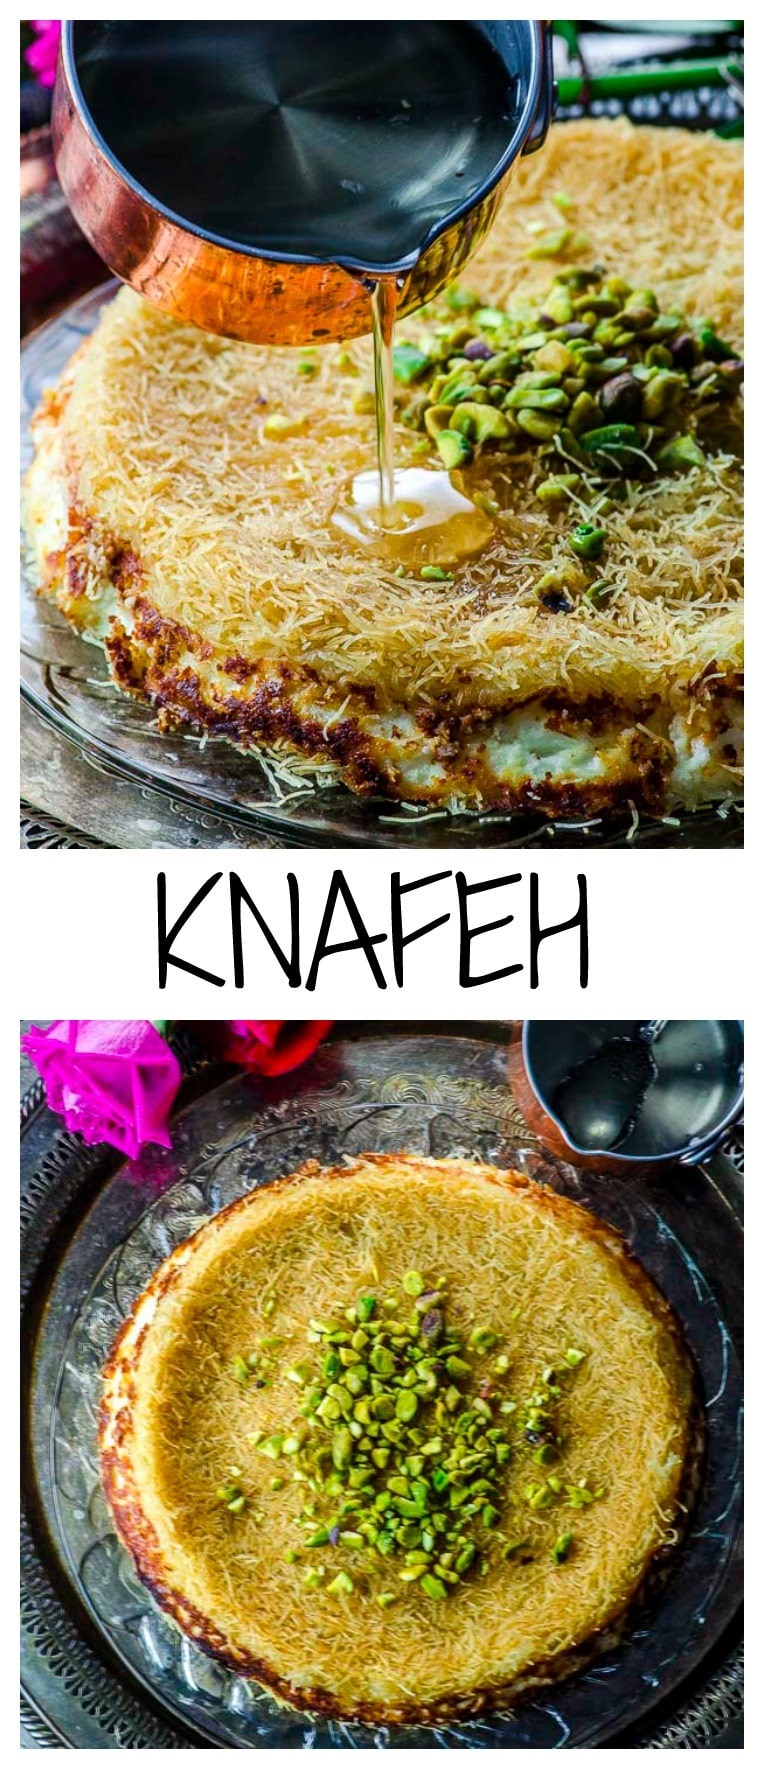 Sweet and incredibly delicious, Knafeh (ka-nee-fah) features shredded phyllo dough, ricotta, and mozzarella to create an fascinating dessert swimming in orange-blossom syrup. #dessert #kanafeh #Ricotta #Shavuot